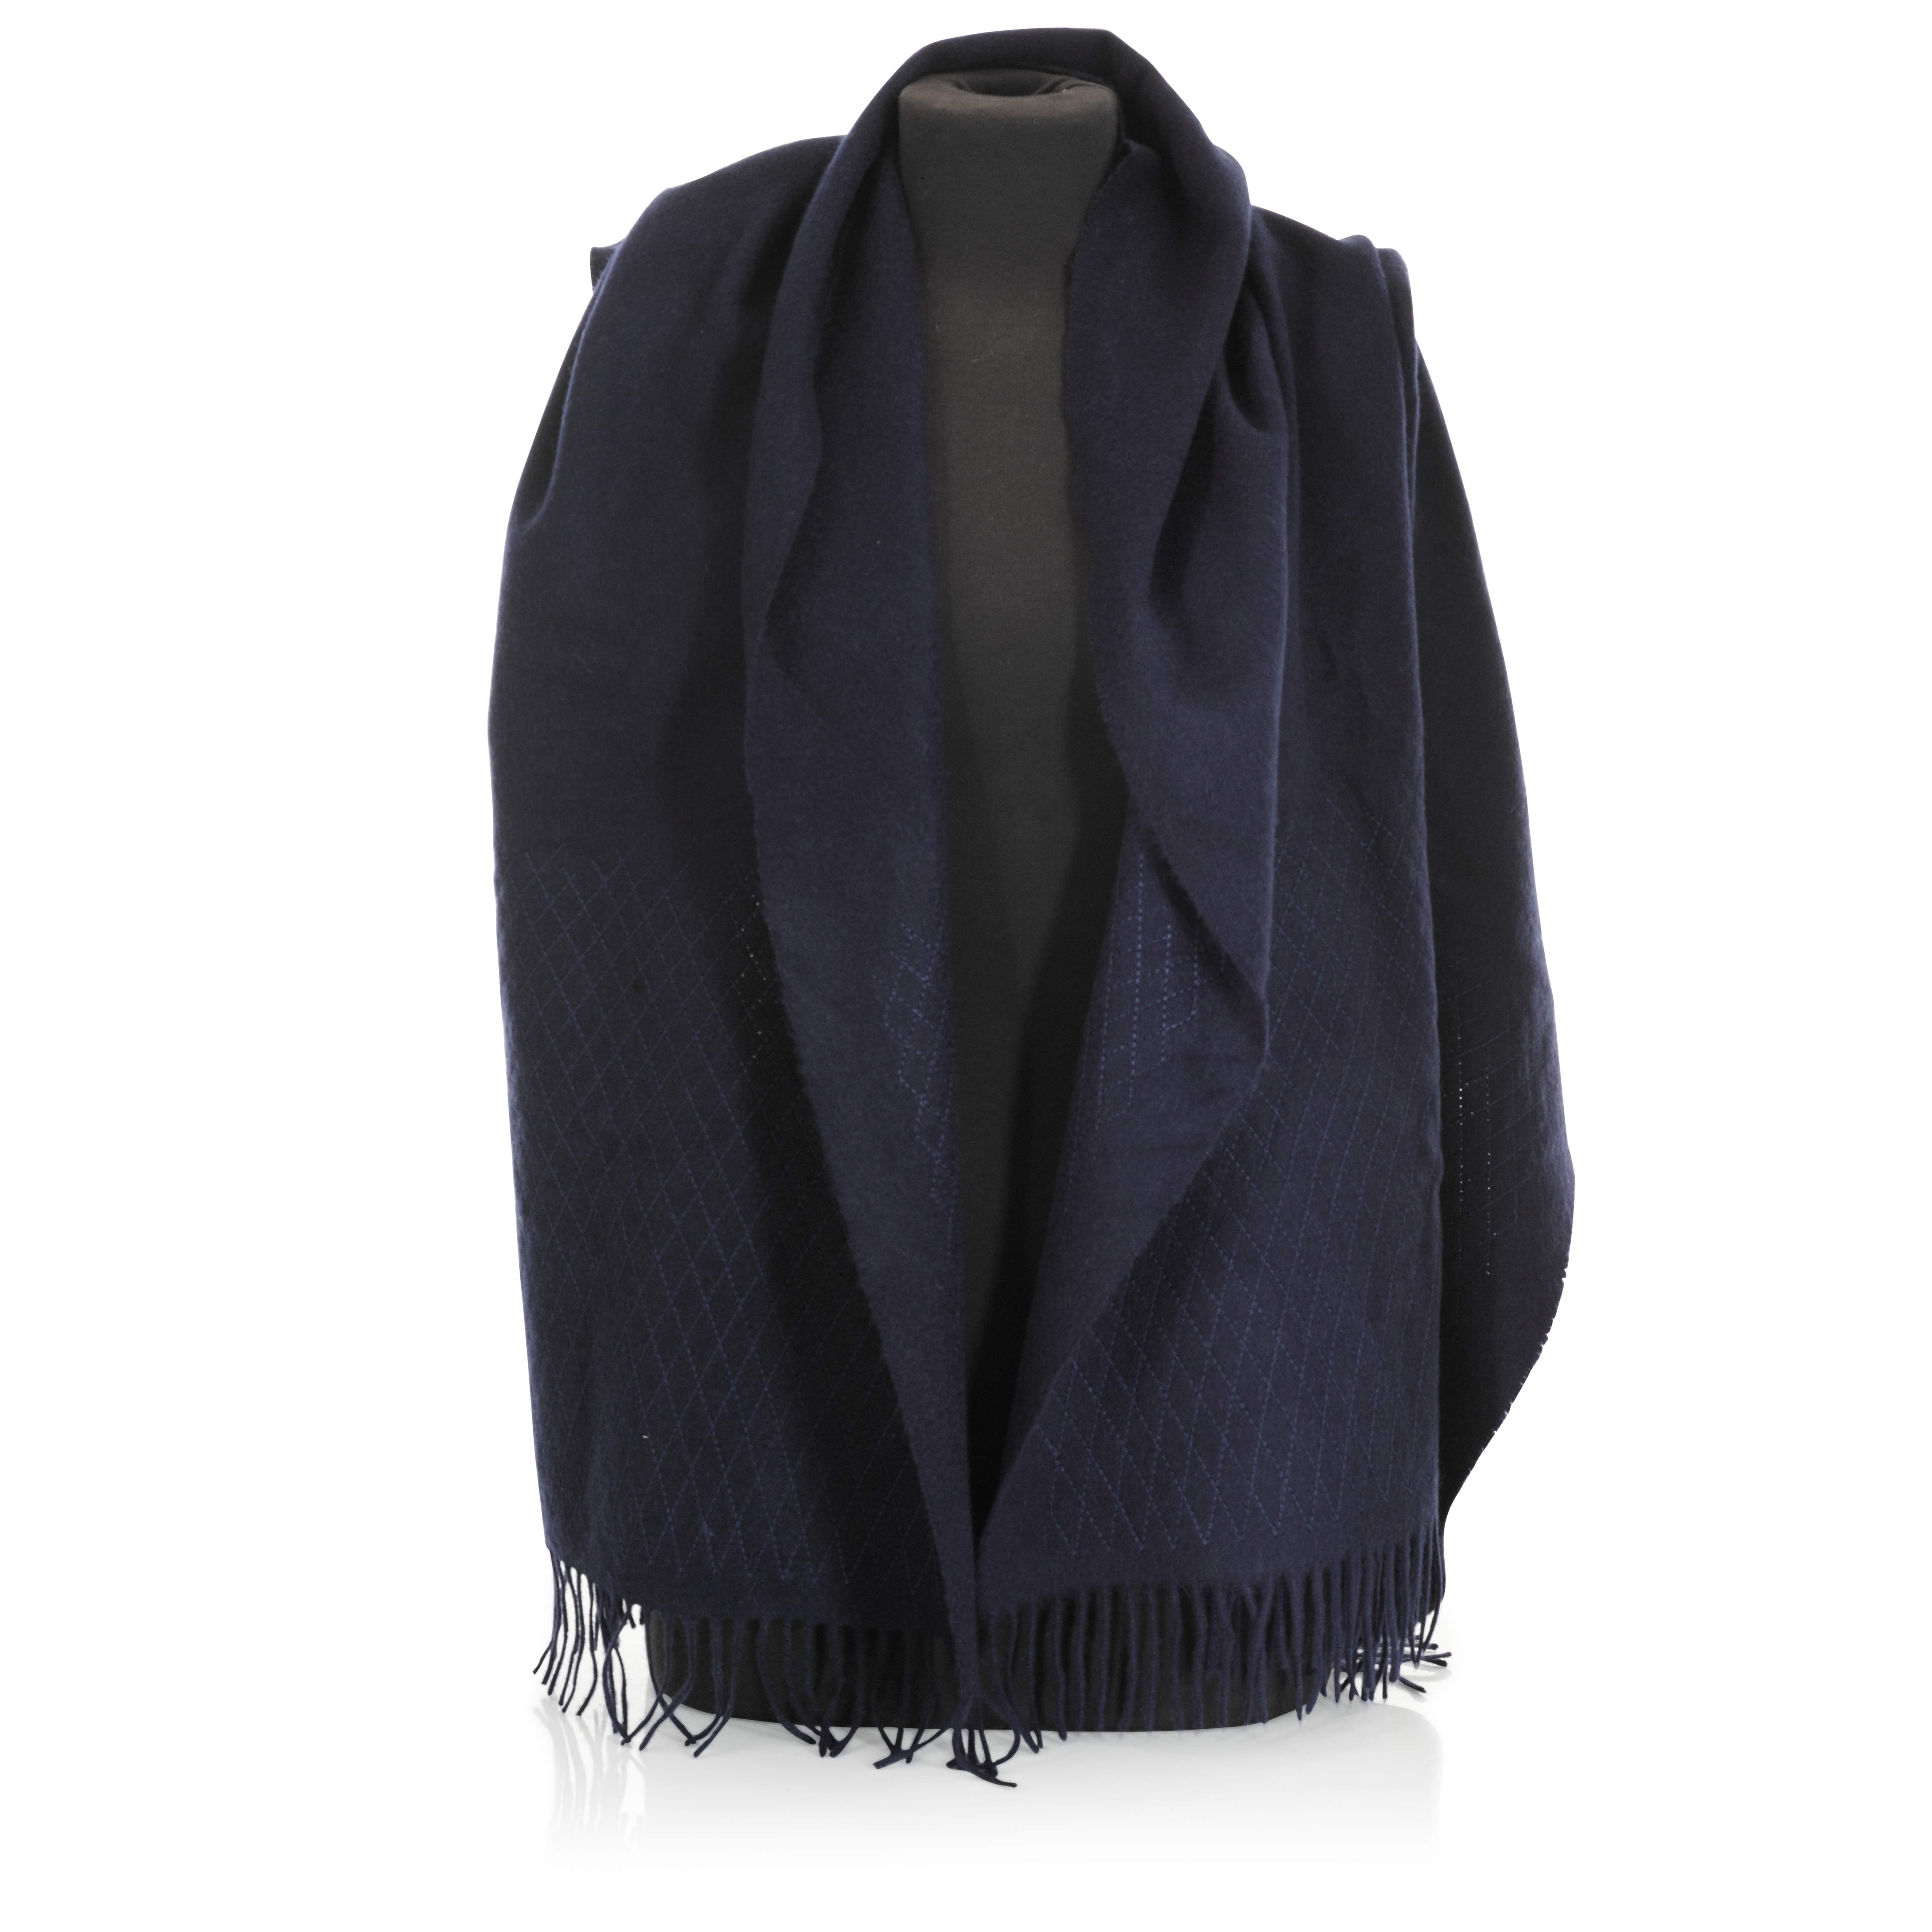 View full screen - View 1 of Lot 198. CHANEL | BLUE CASHMERE DIAMOND STITCH DETAIL SHAWL, 2018.